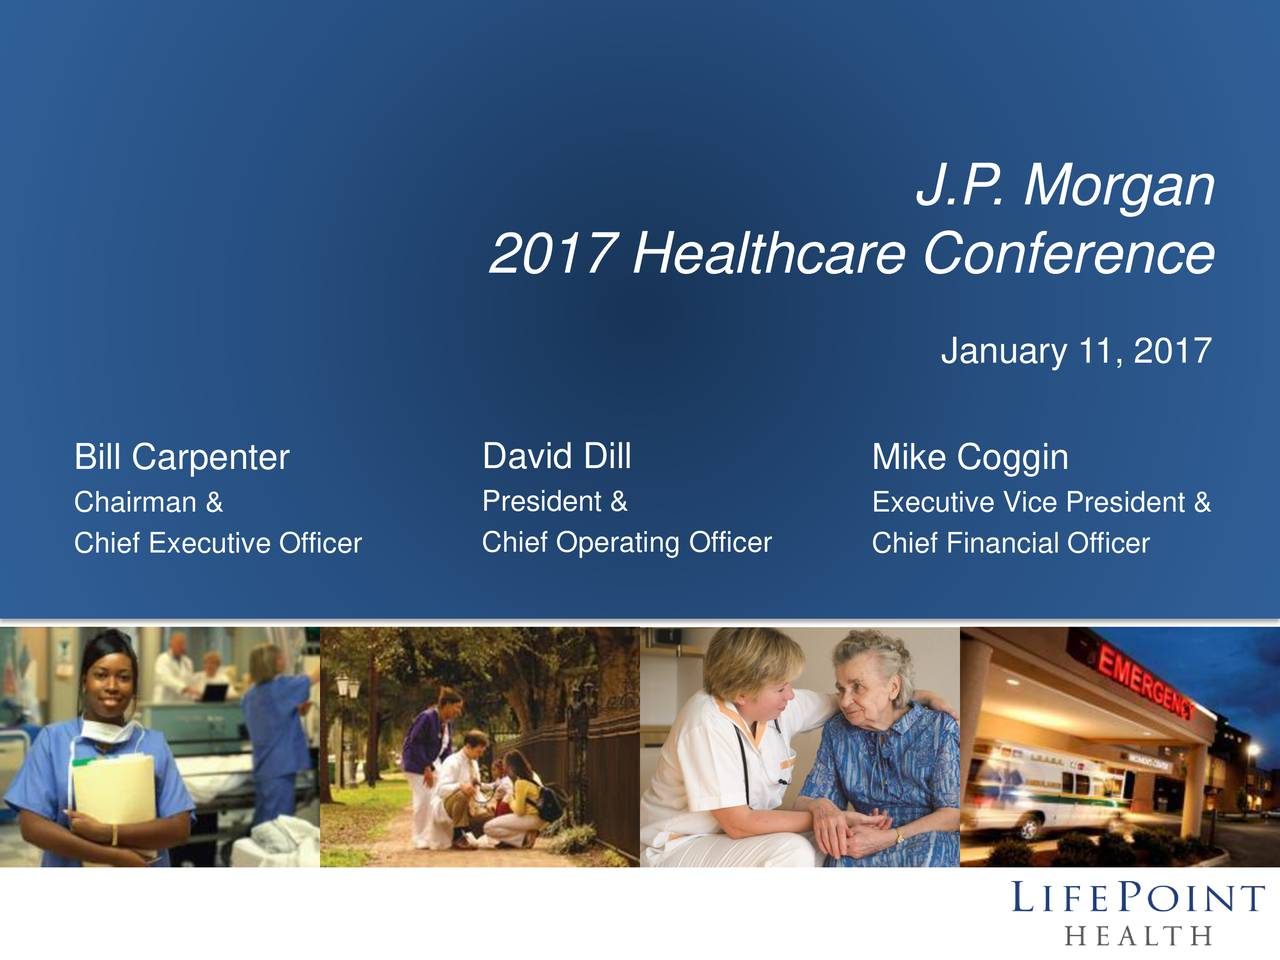 2017 Healthcare Conference January 11, 2017 Bill Carpenter David Dill Mike Coggin Chairman & President & Executive Vice President & Chief Executive Officer Chief Operating OfficerChief Financial Officer 1